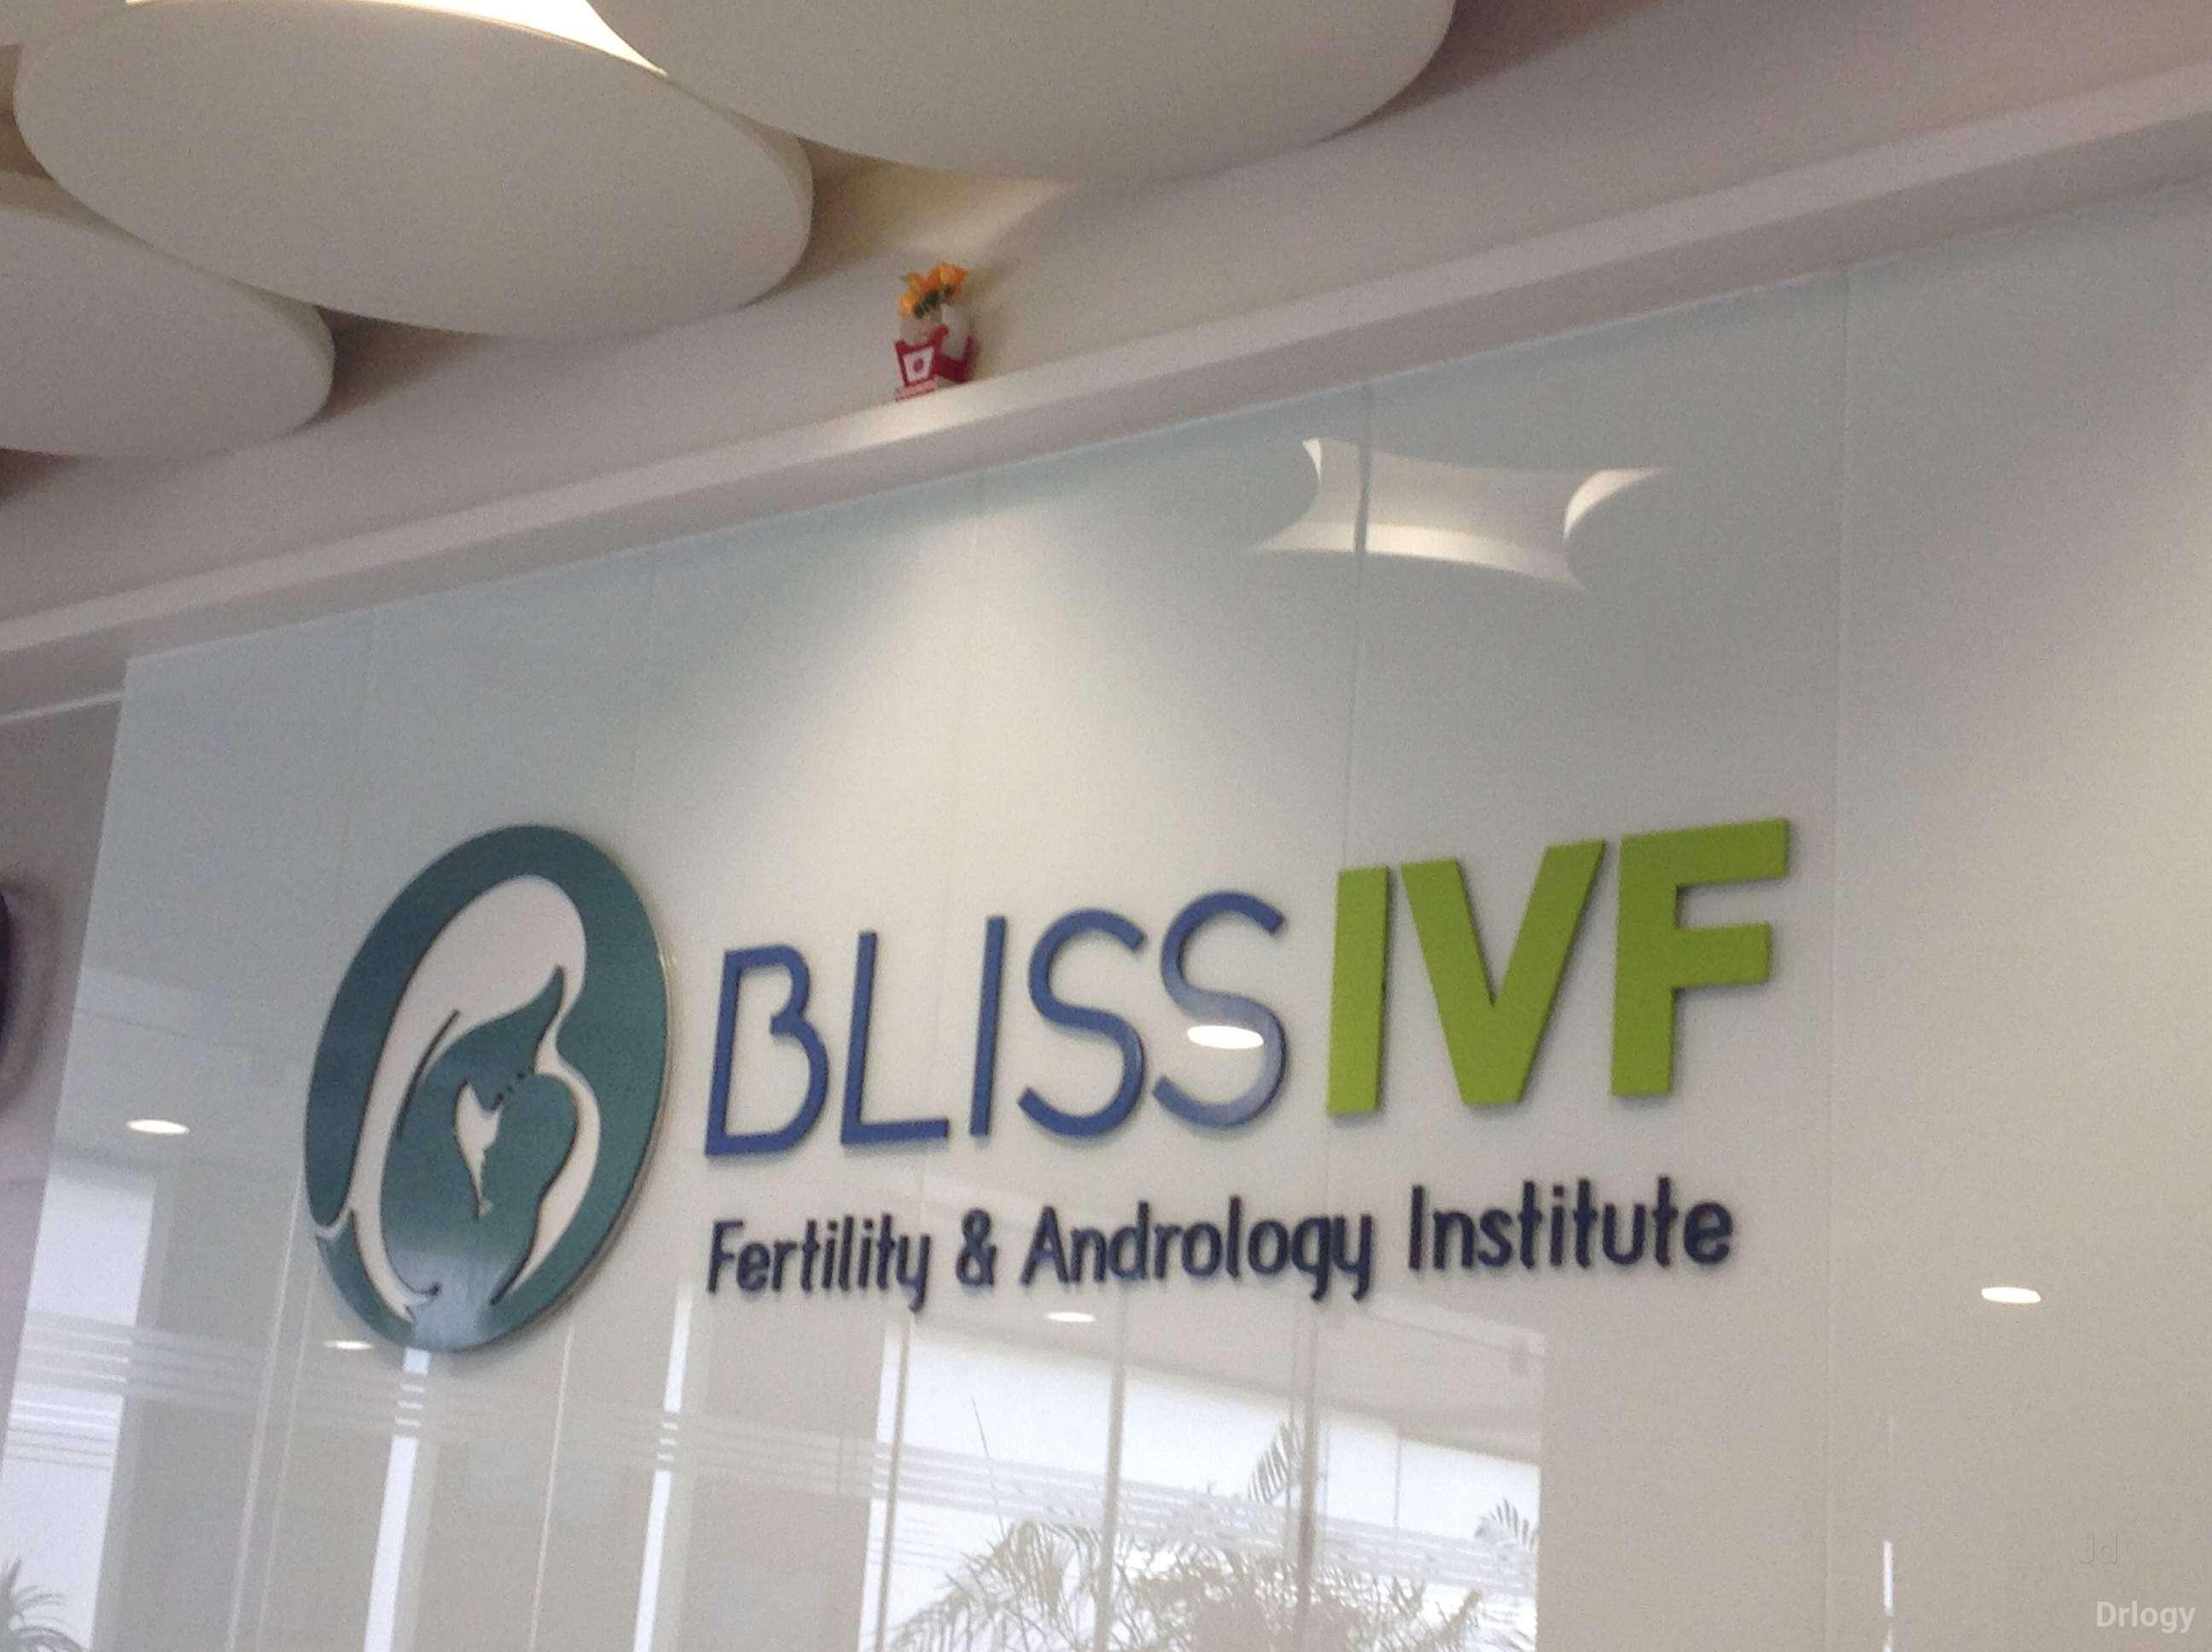 BLISS IVF Fertility and Andrology Institute in Surat